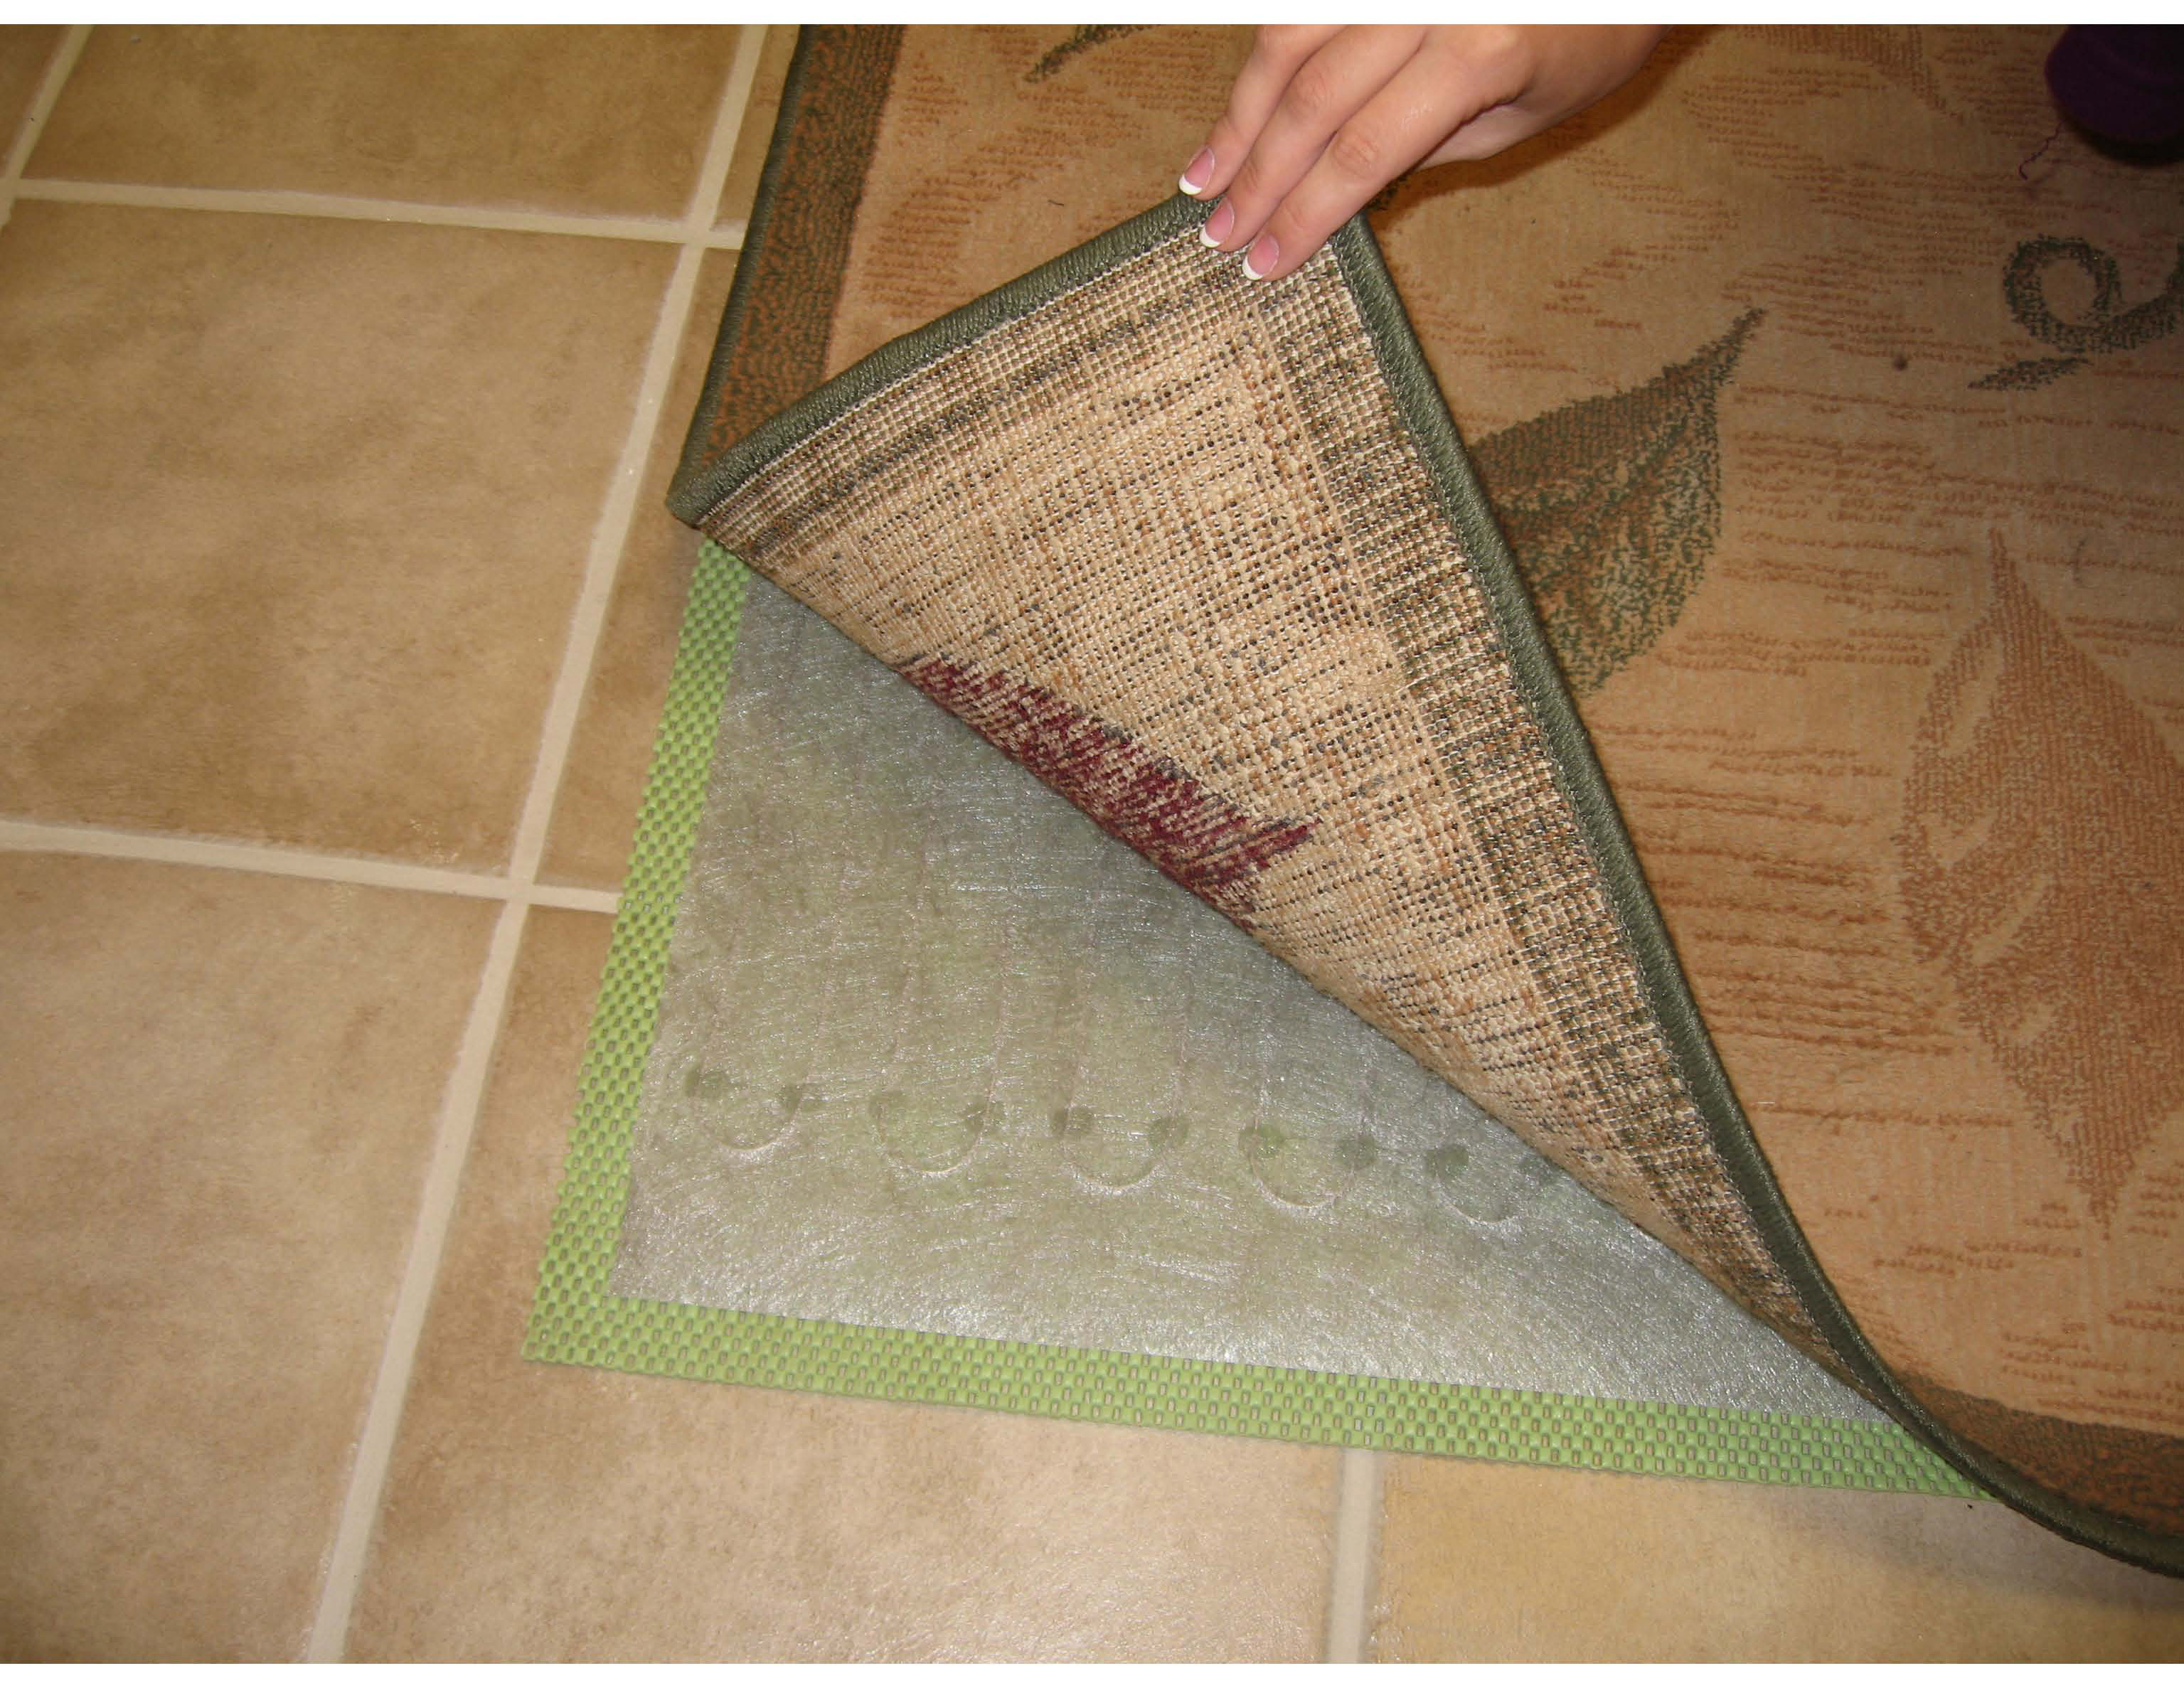 New Tilewarm Reseller Program Makes Floor Warming Simple